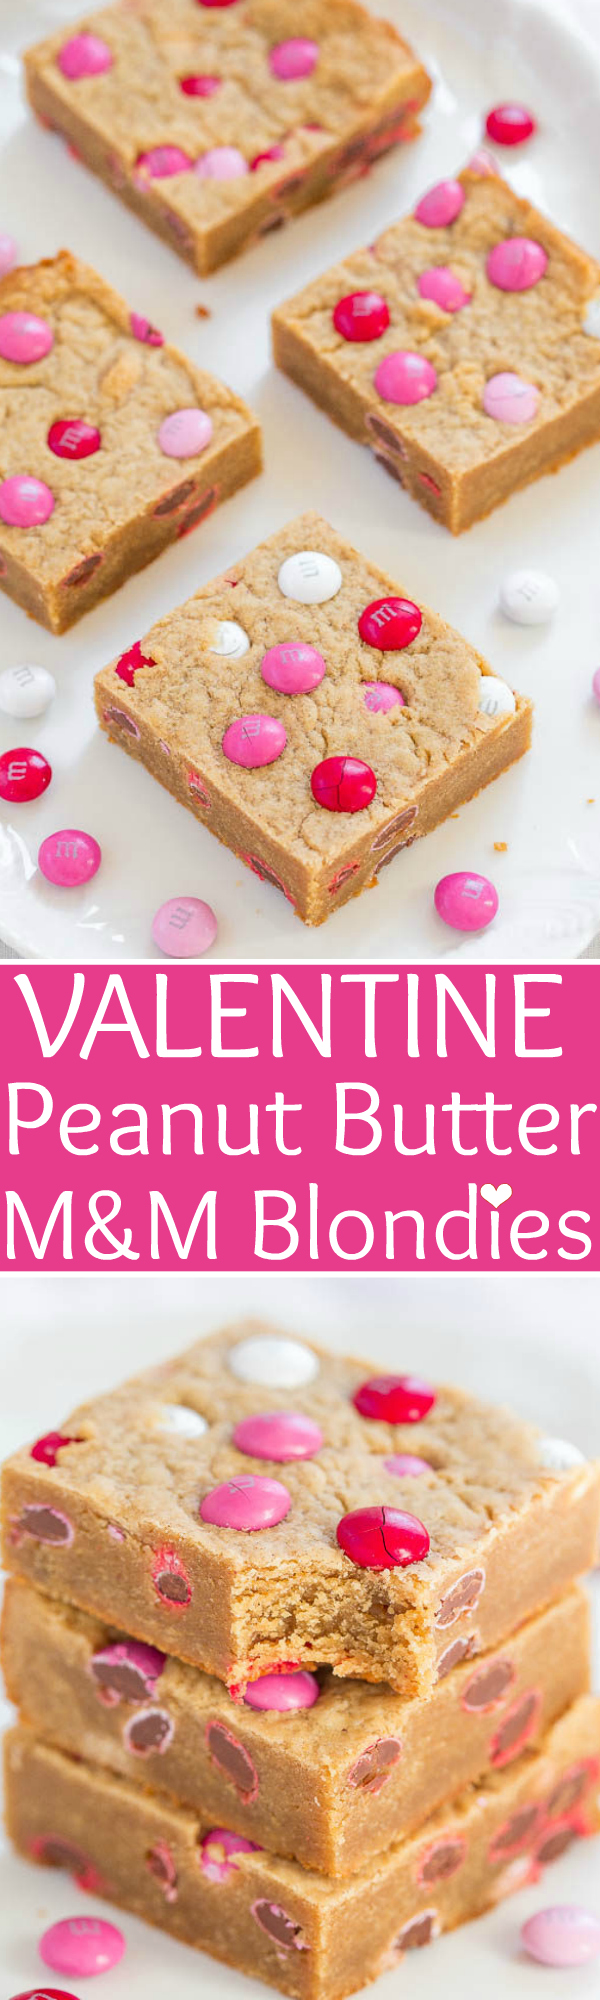 Two picture collage of Valentine Peanut Butter M&M Blondies with graphic title